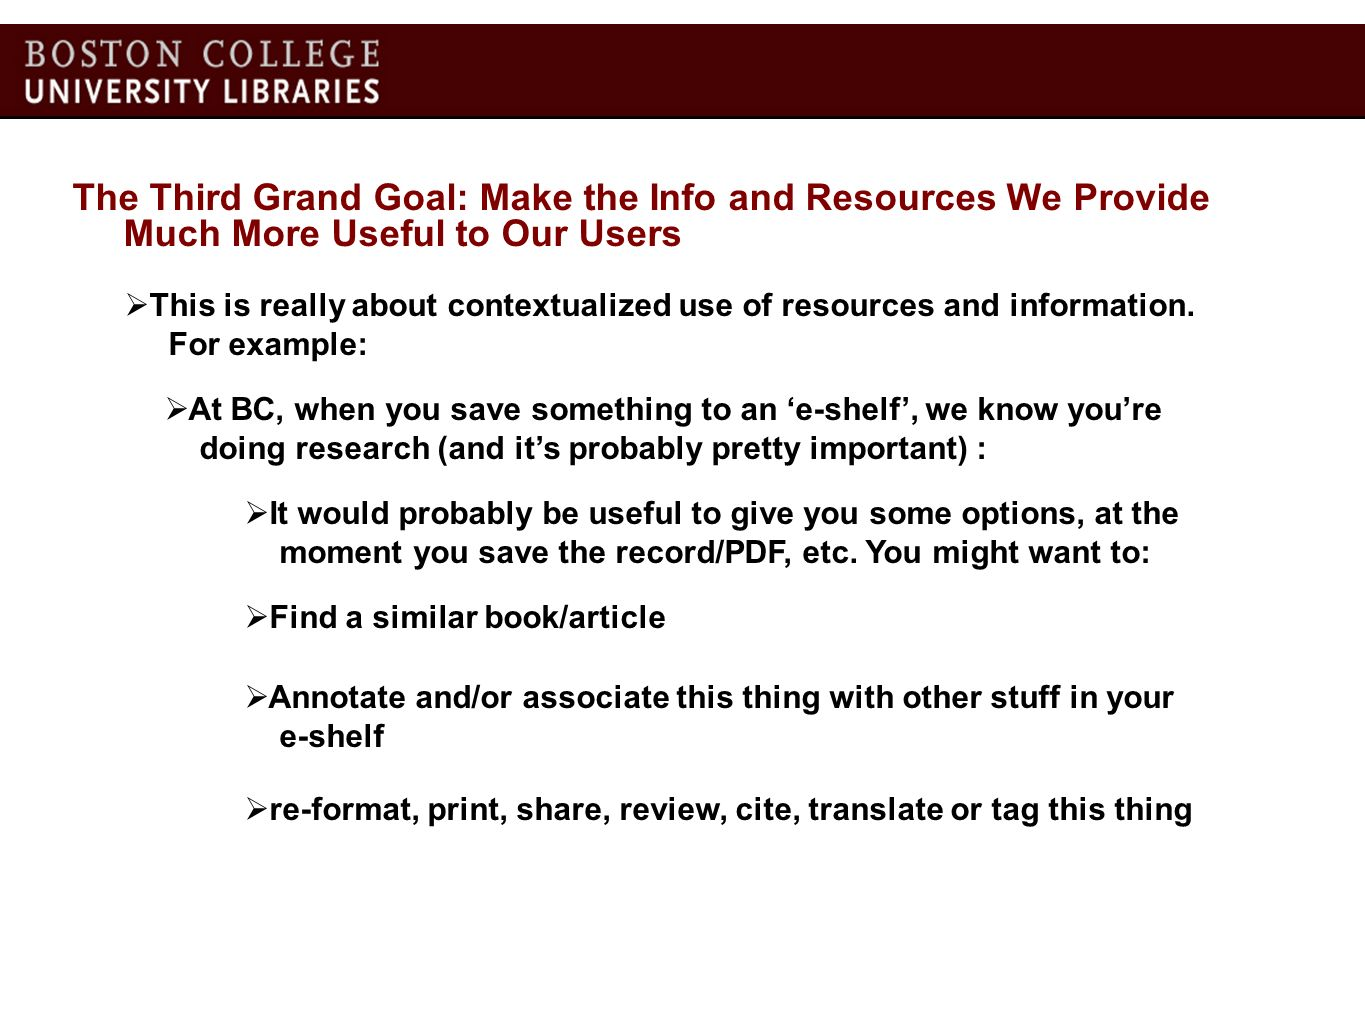 The Third Grand Goal: Make the Info and Resources We Provide Much More Useful to Our Users This is really about contextualized use of resources and in